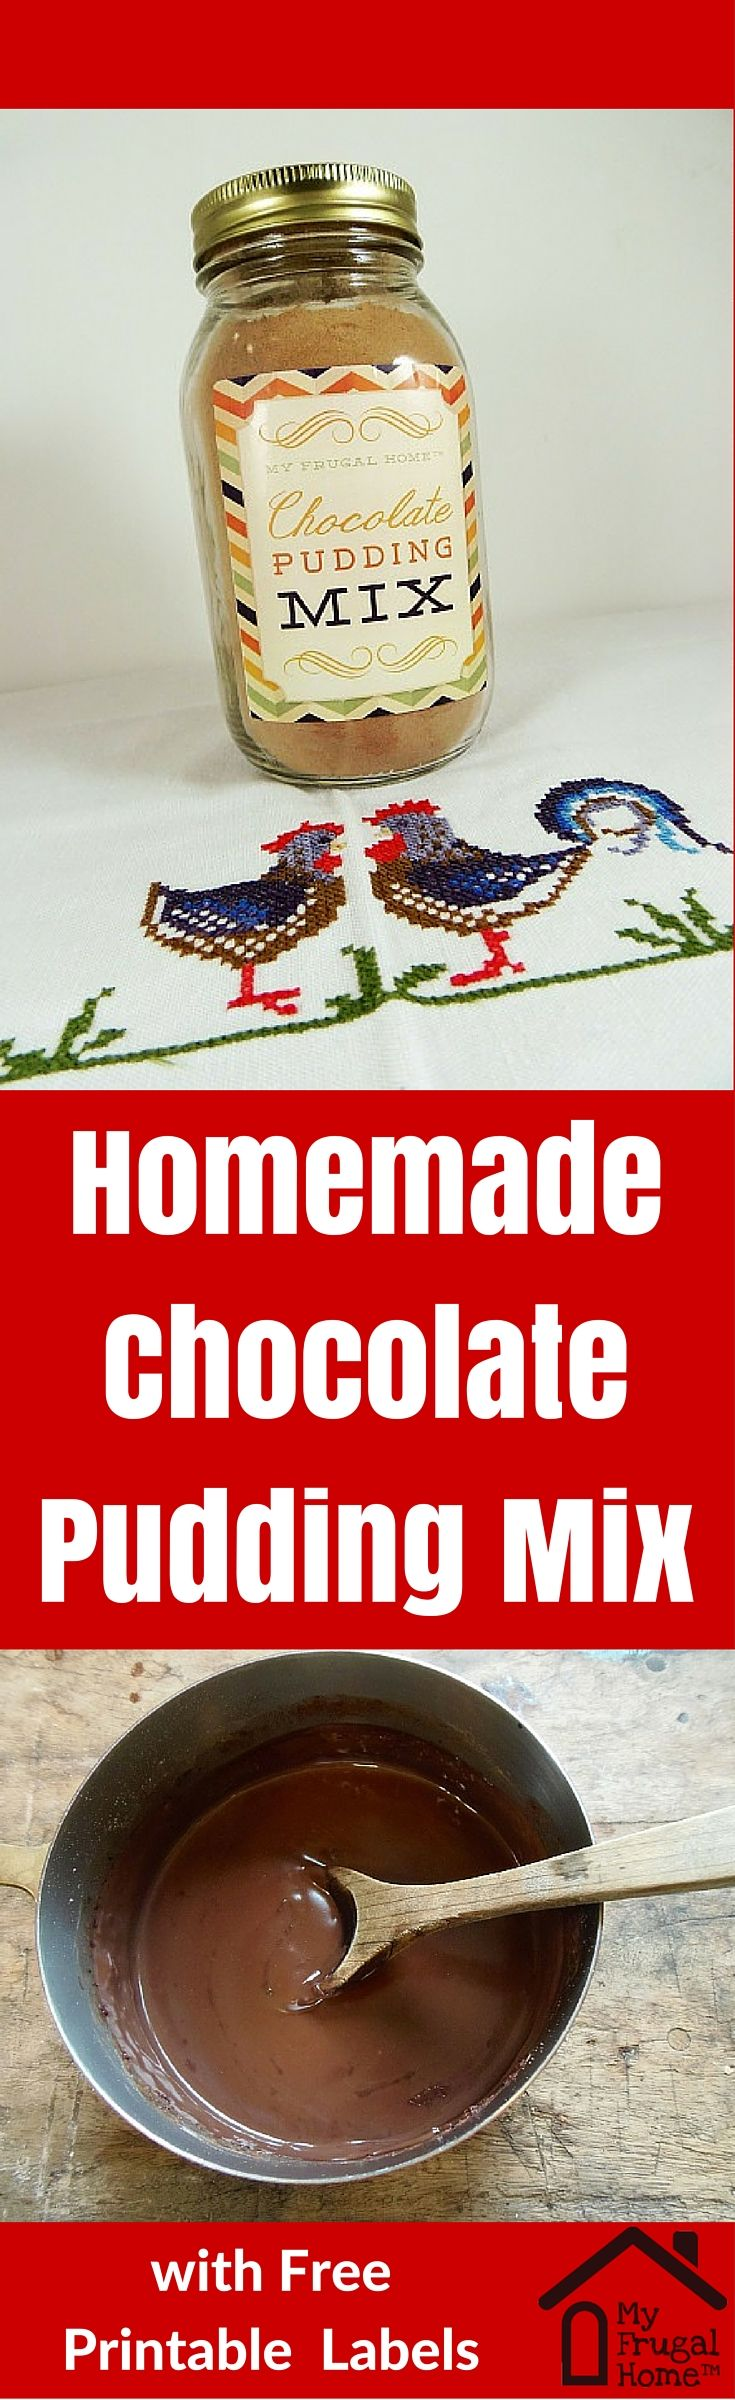 Chocolate Pudding Mix Homemade Chocolate Pudding Mix - with free printable labels. Cook a batch of pudding in just 12 minutes.